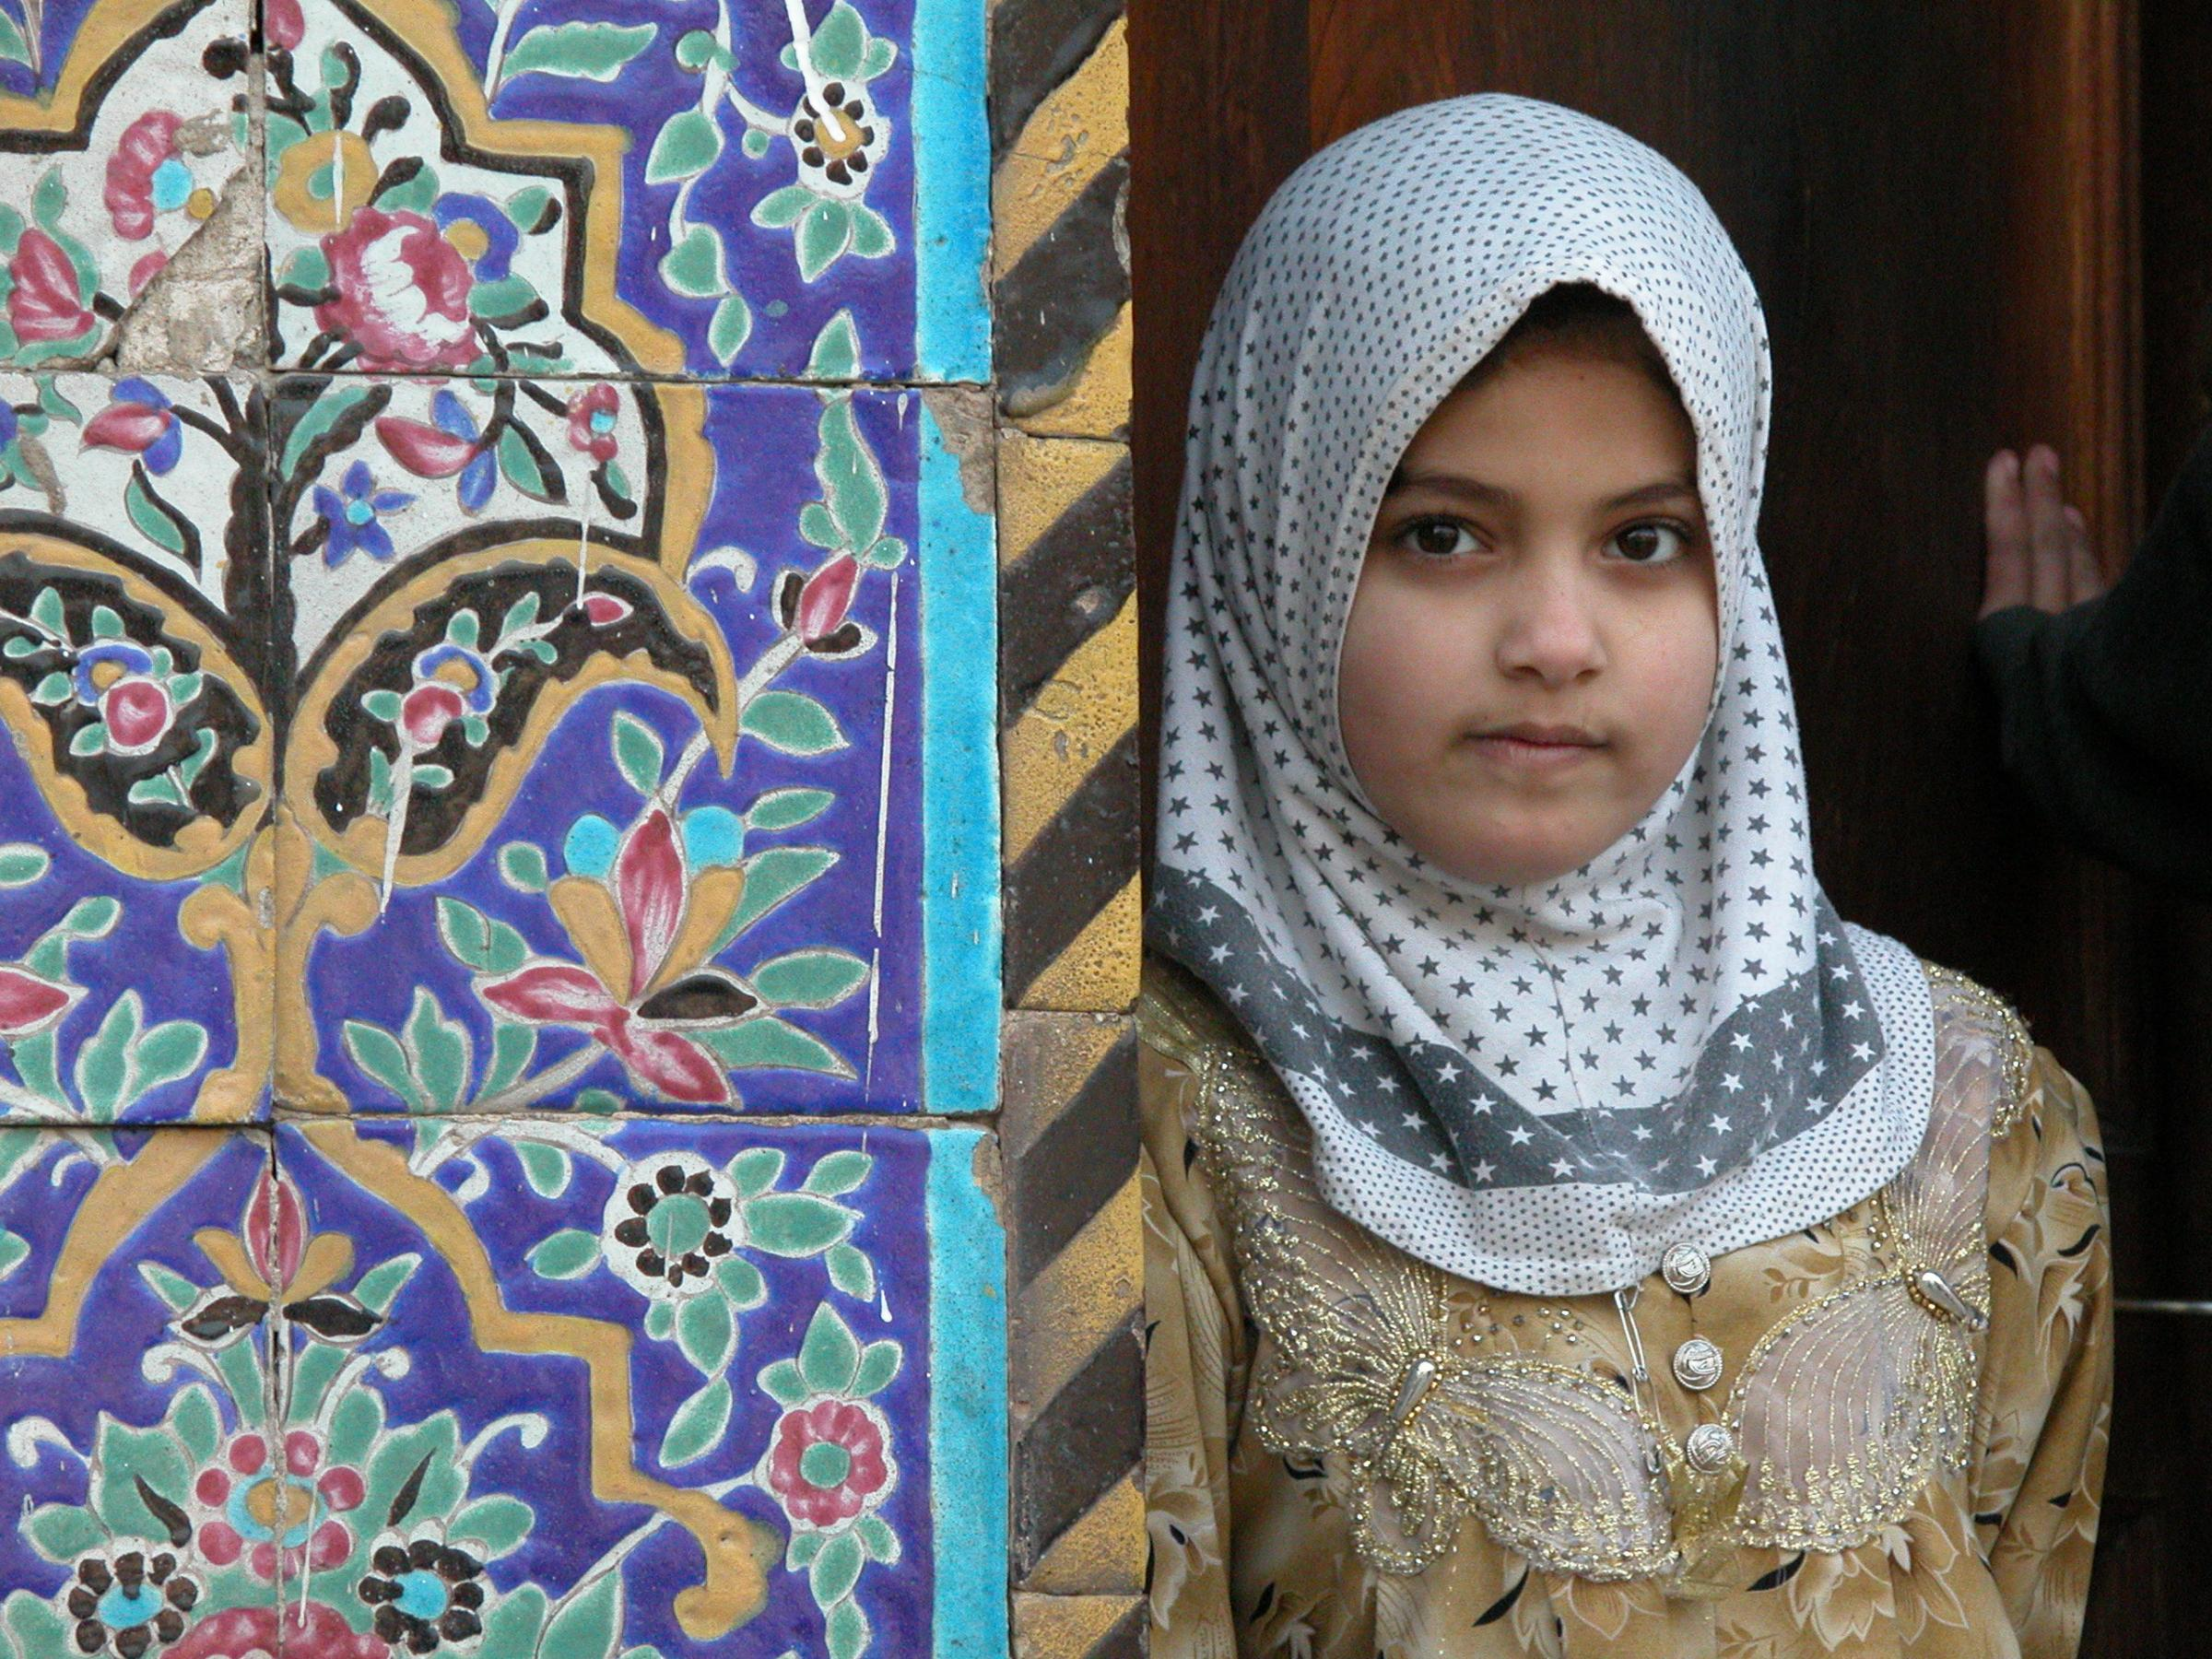 Iraqi Girl Leaning Against Wall